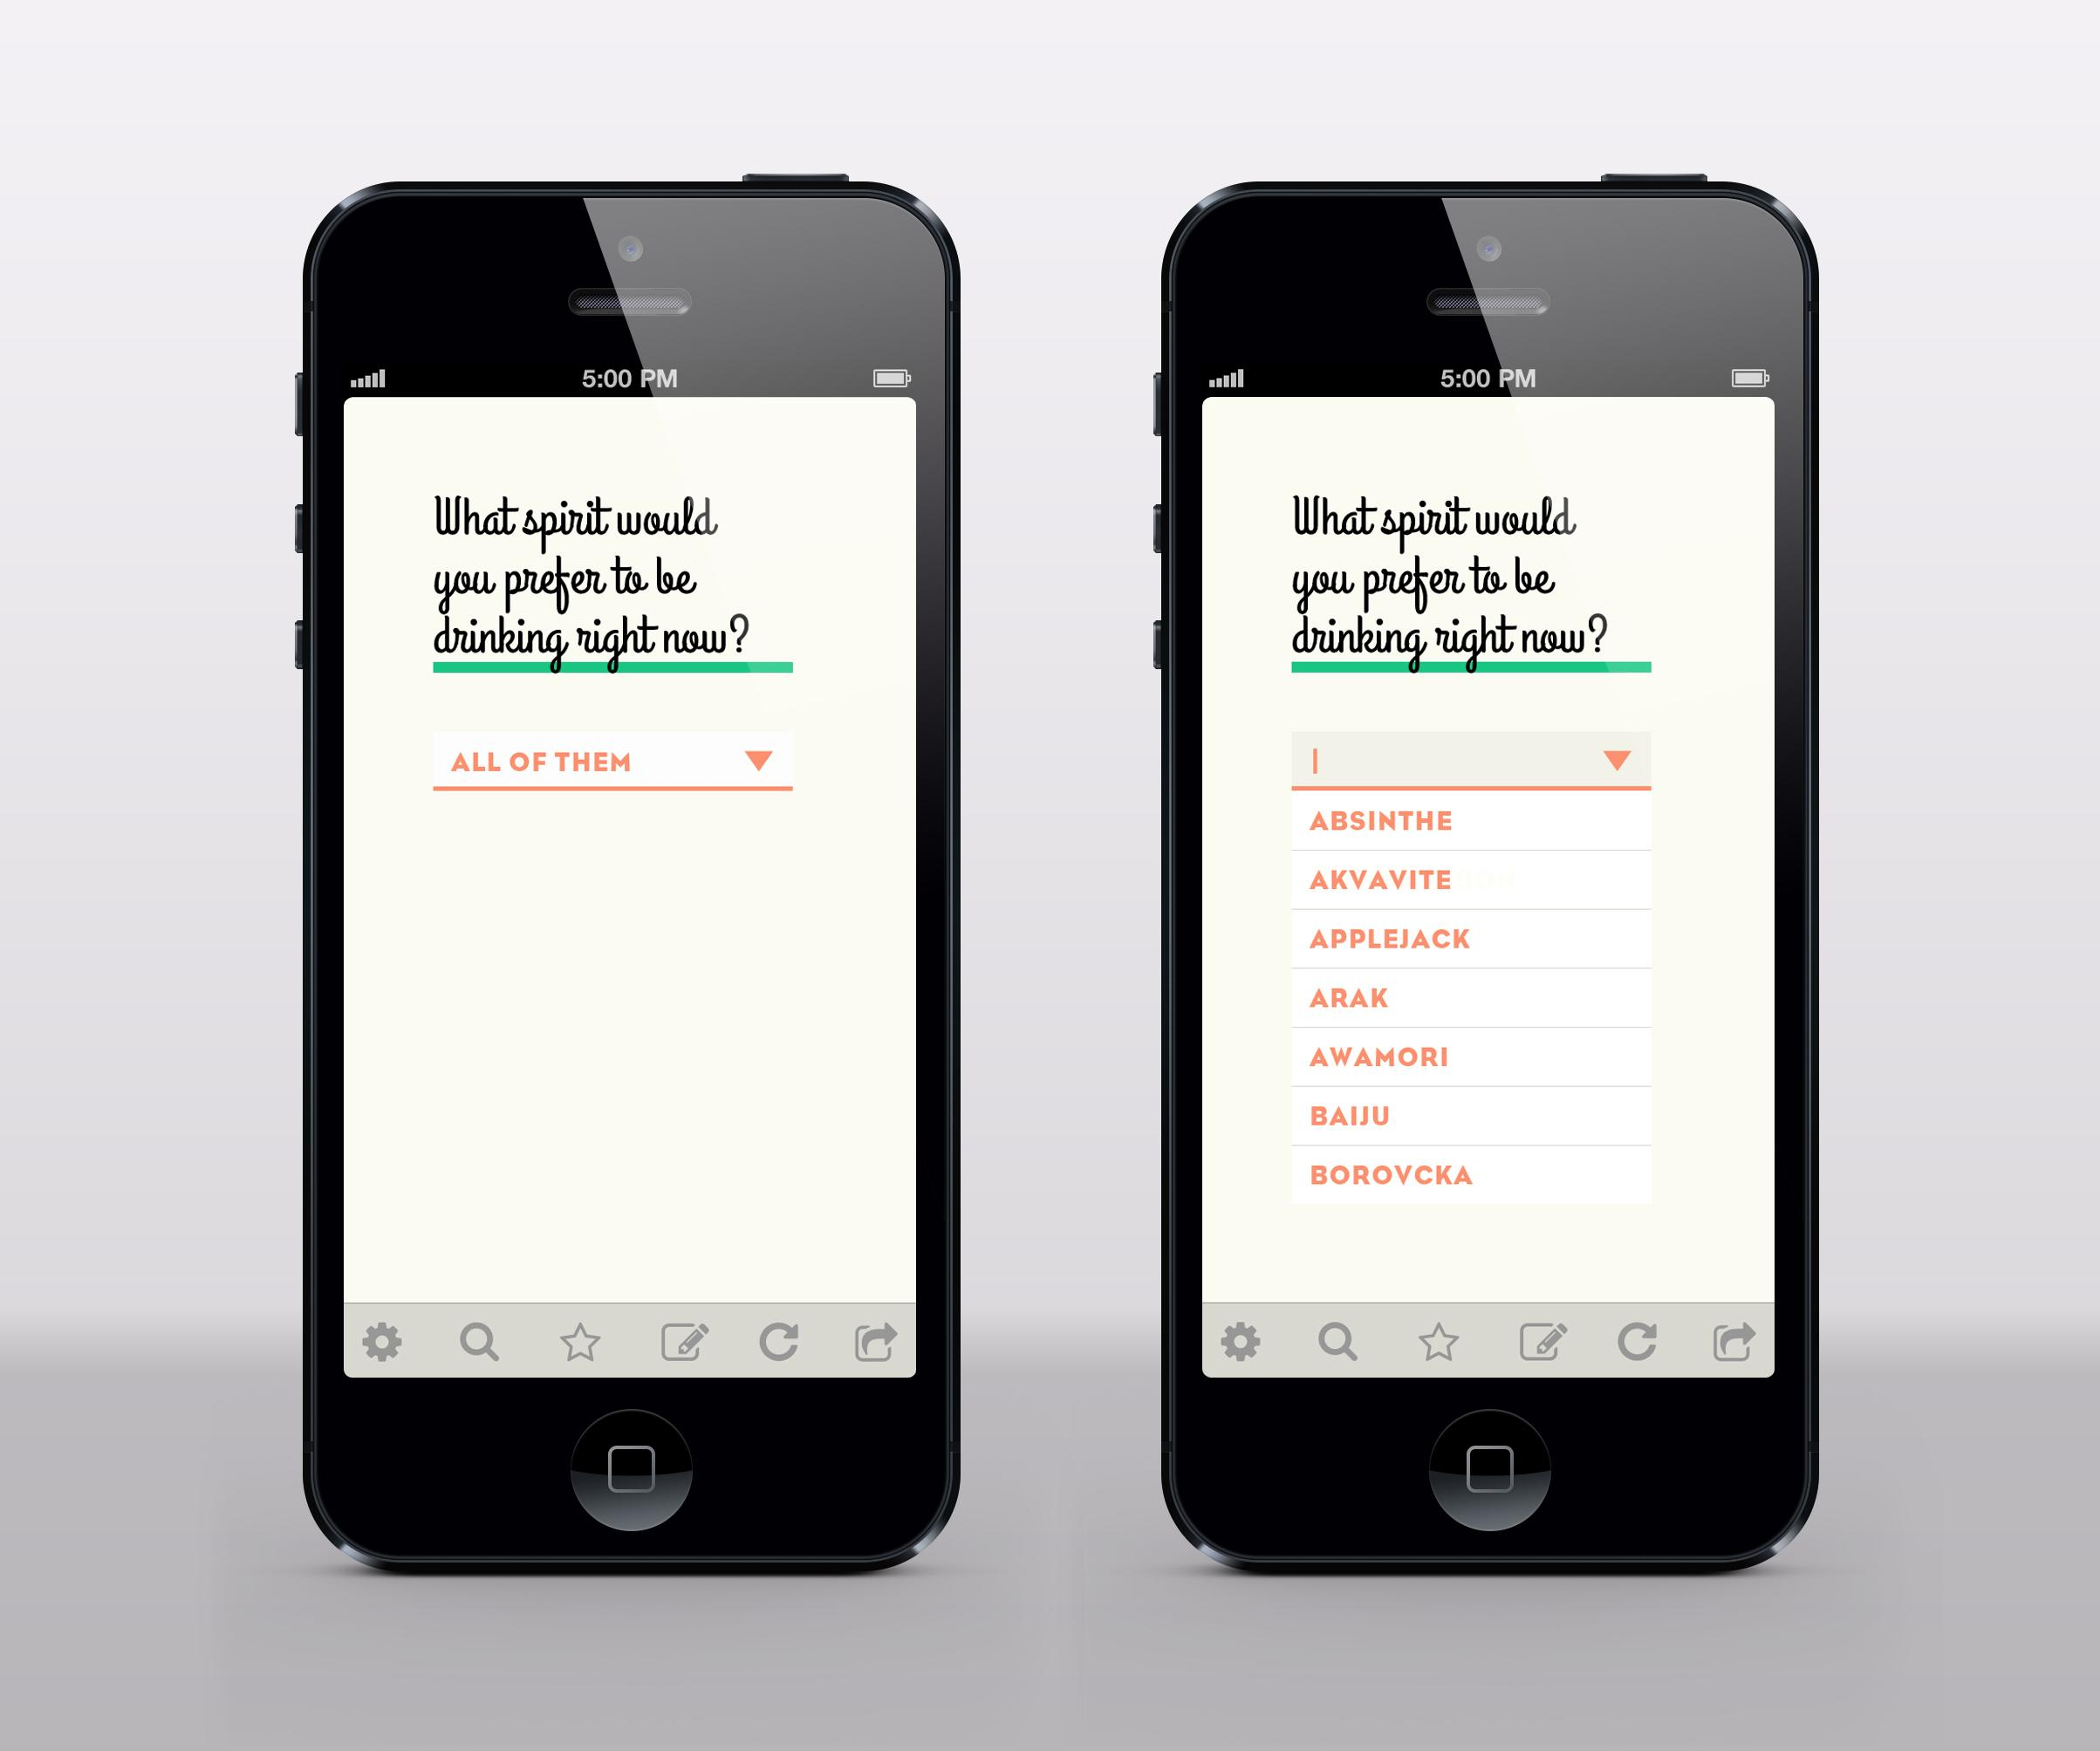 Some Alcohol-Focused Mobile App - image 4 - student project